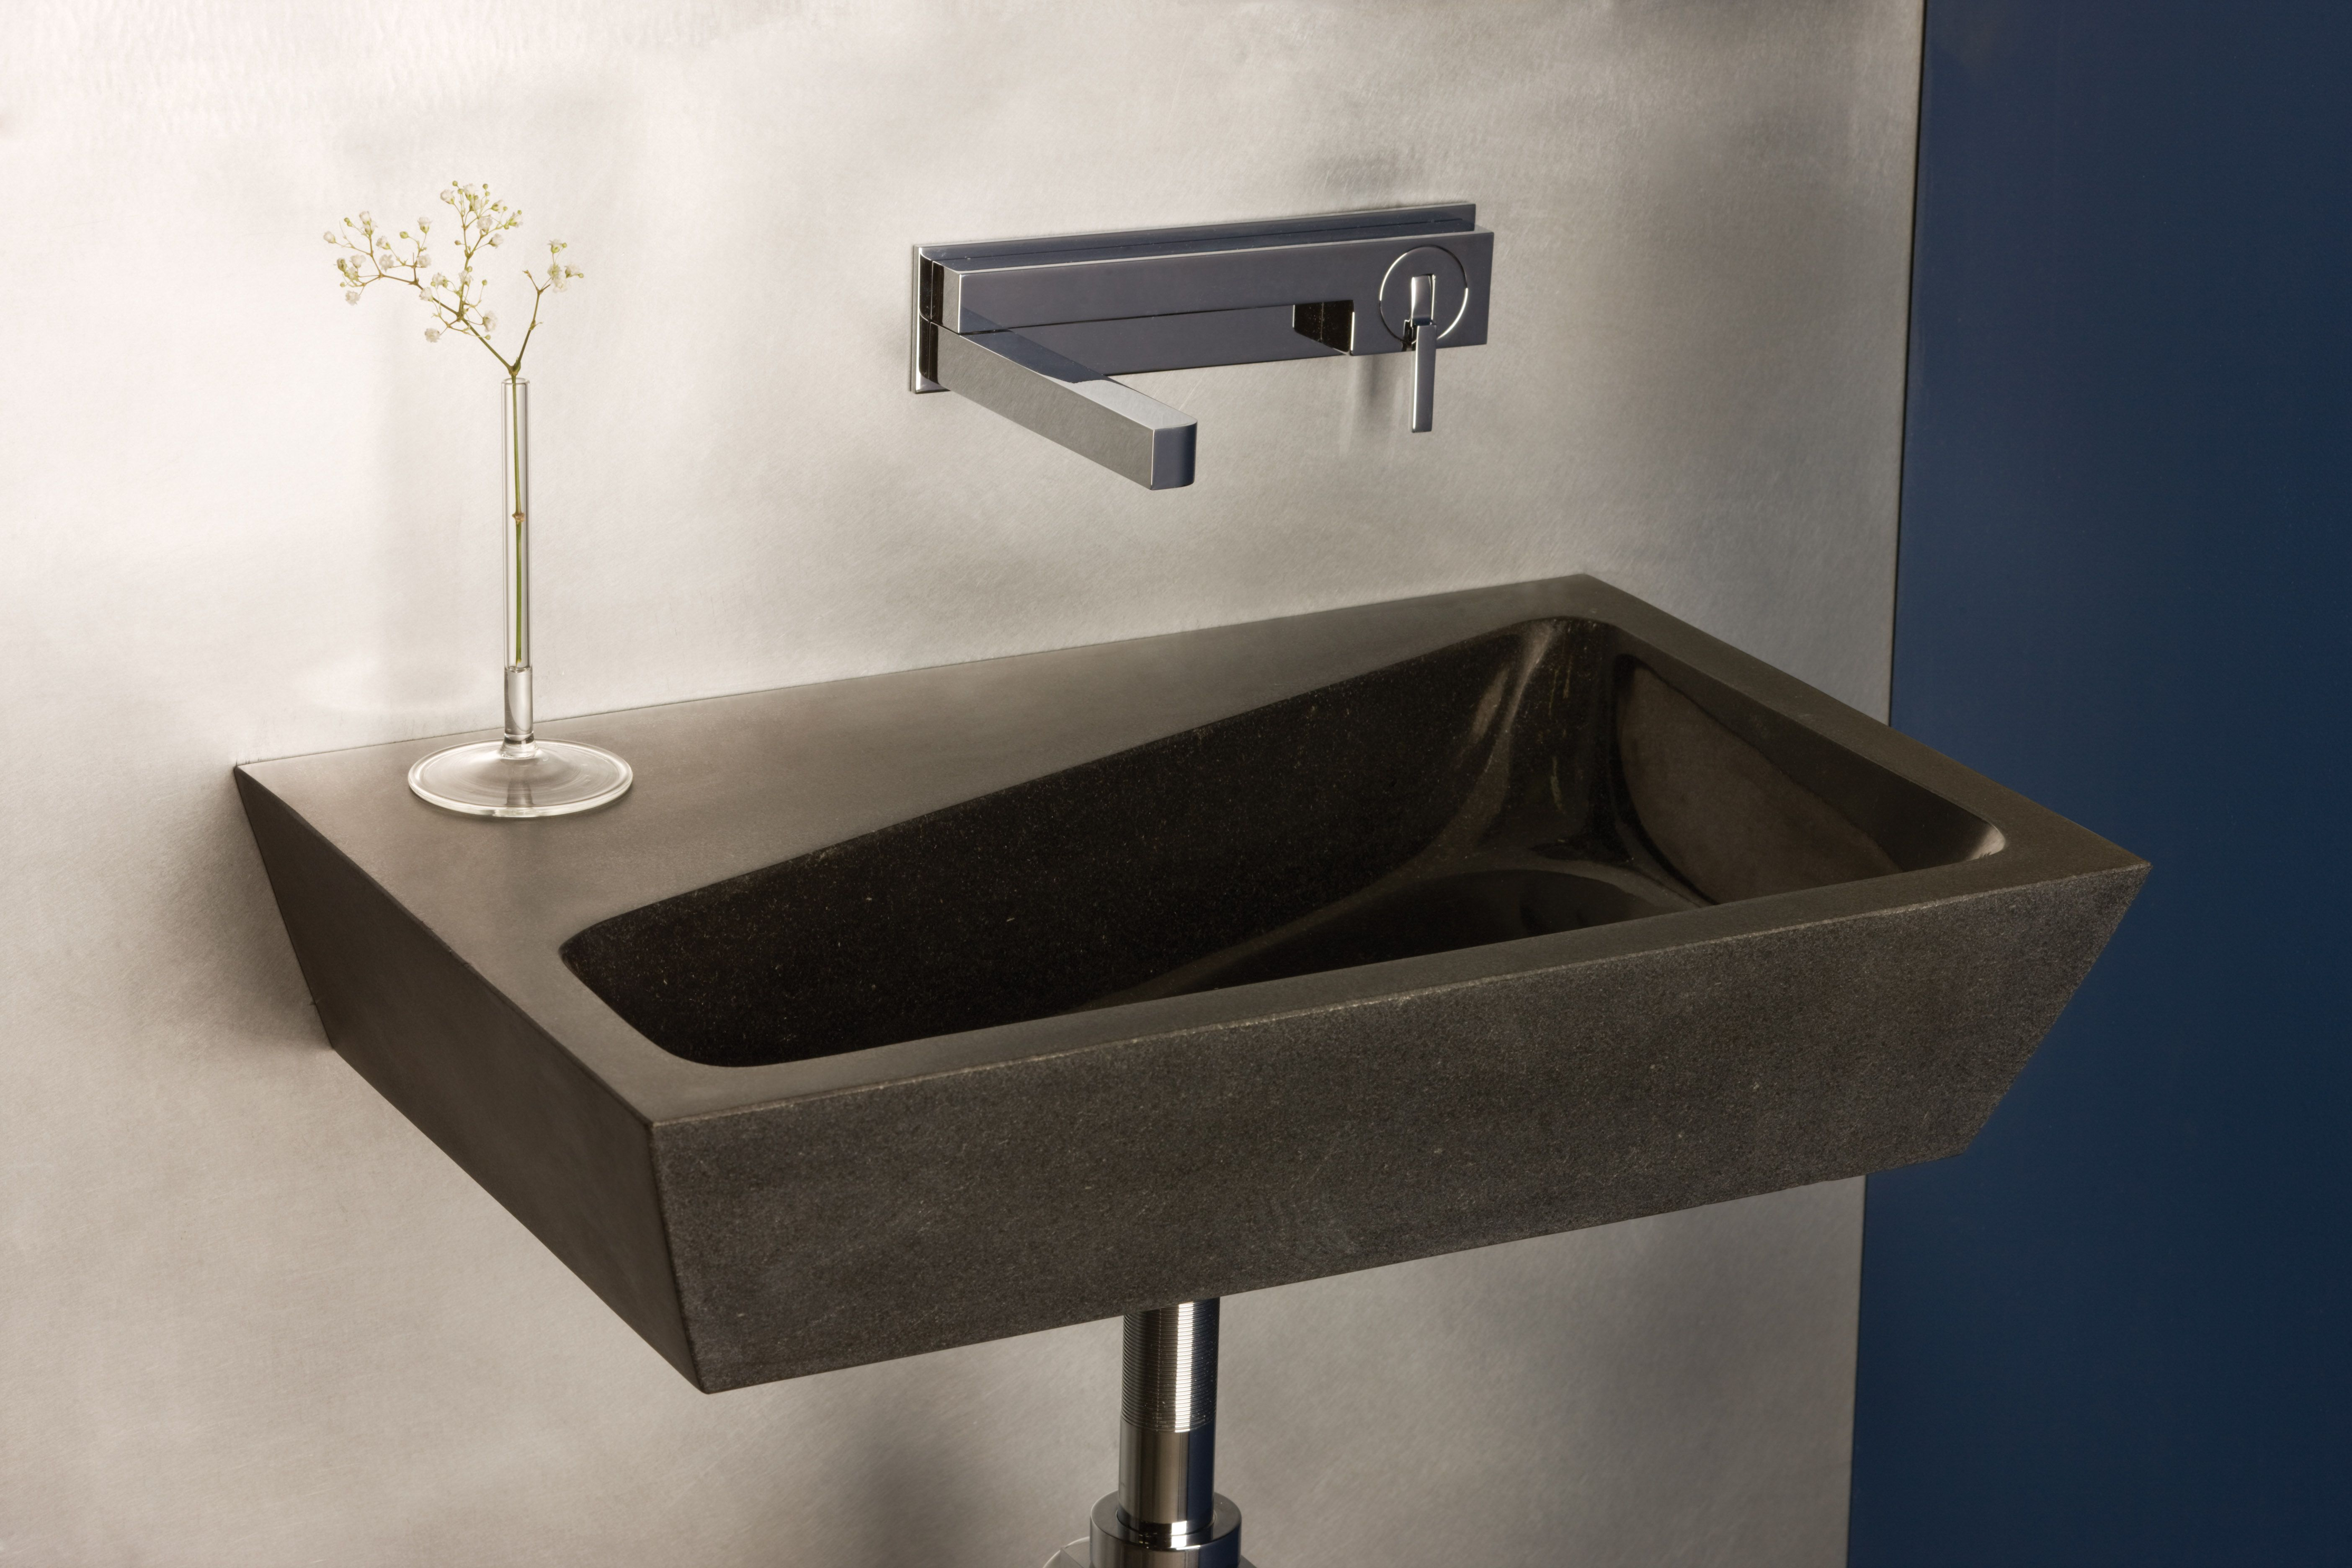 The New Stone Forest 2tone Wall Mount Sink Derives Its Name From The Two Finishes That Adorn The